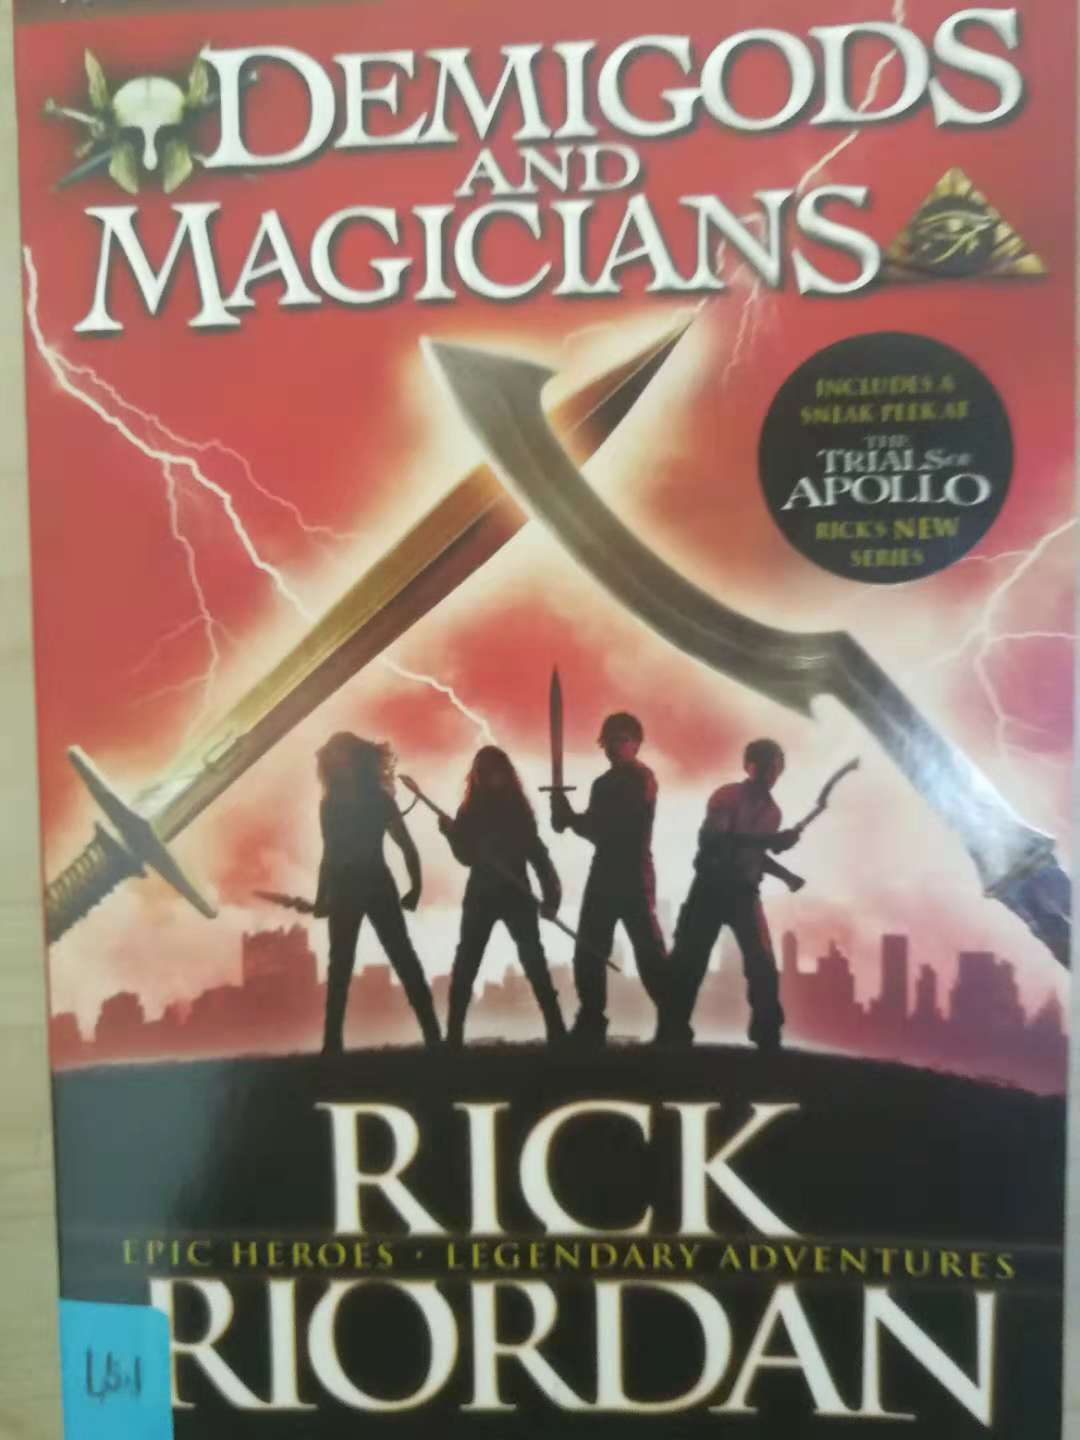 Demigods and magicians   5.1